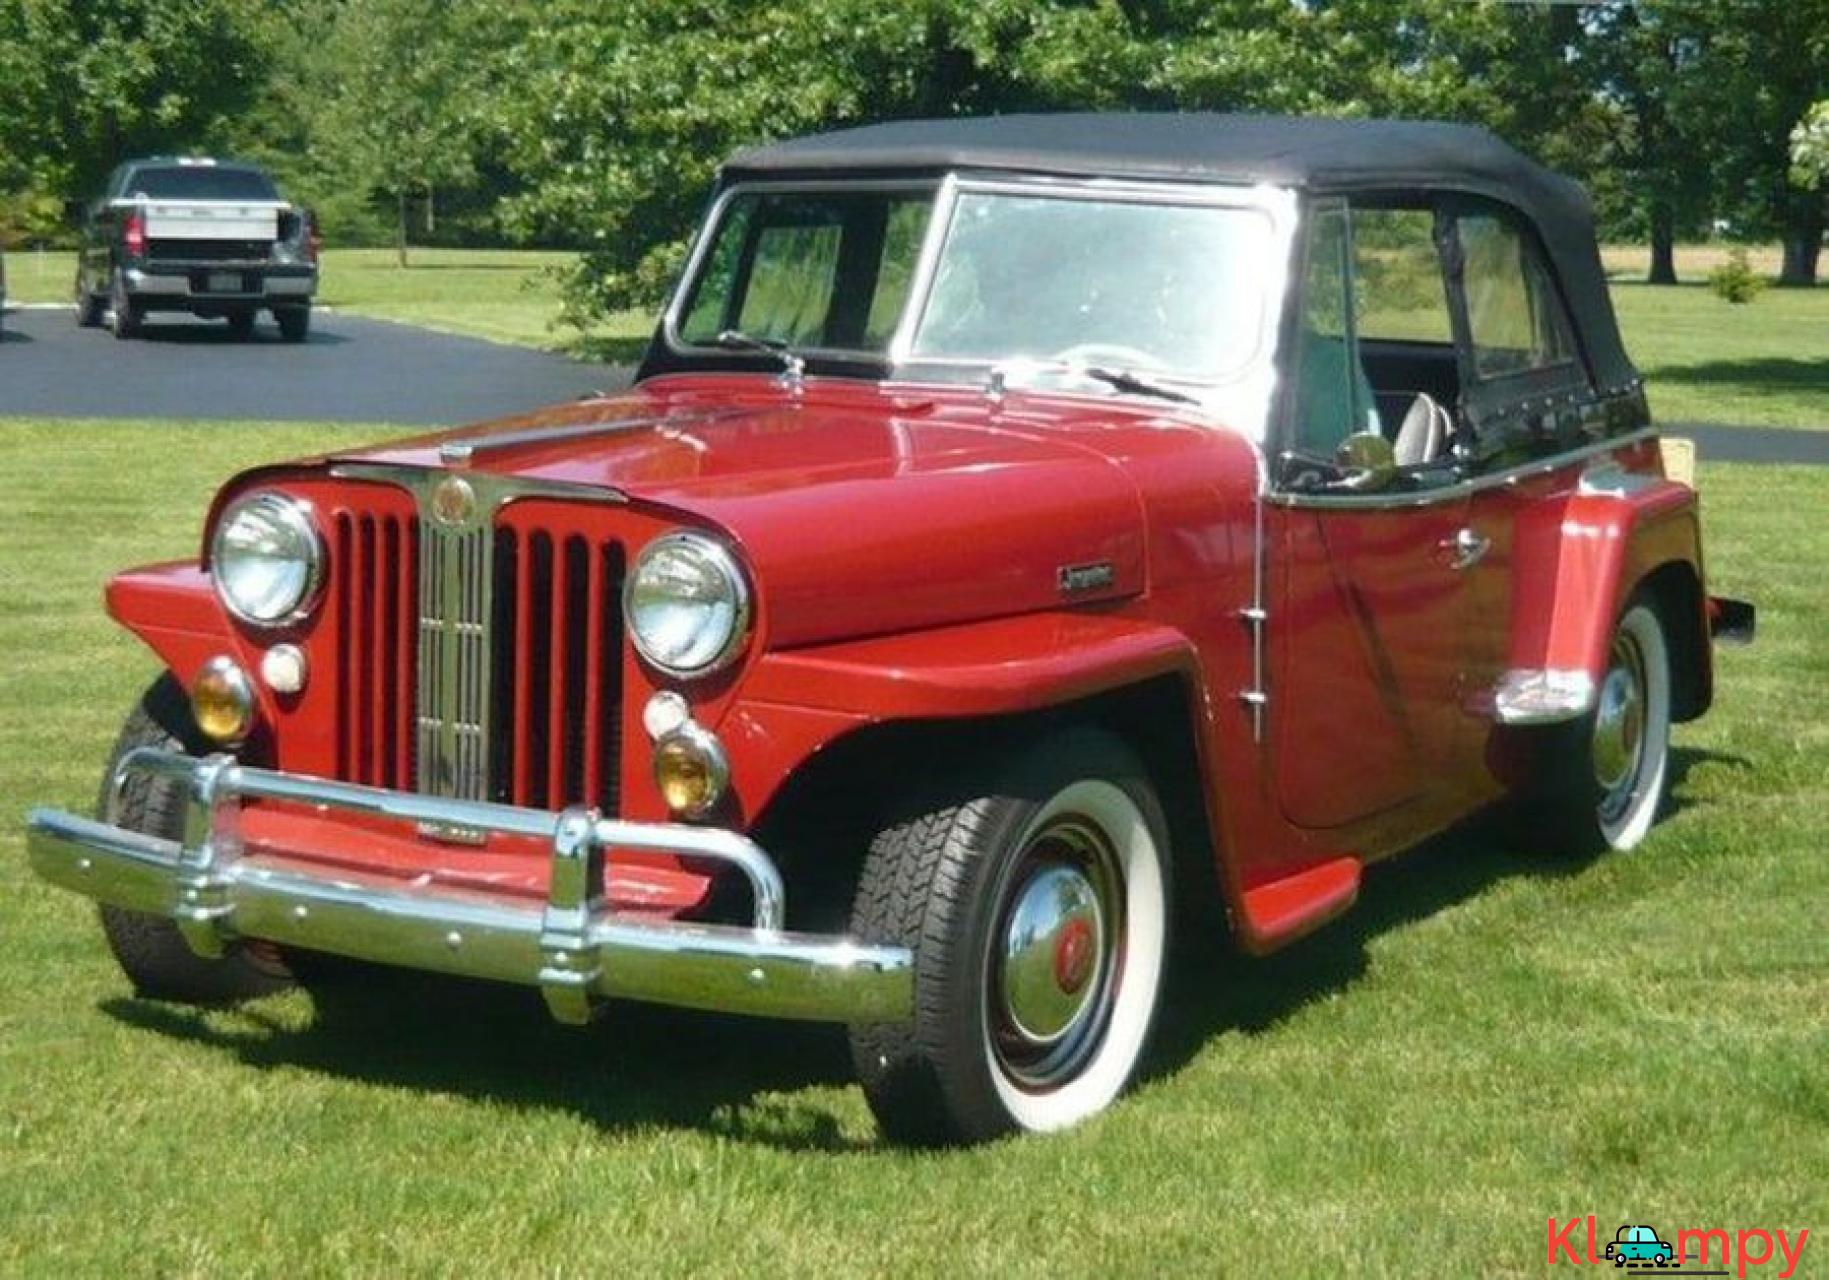 1948 Willys Jeepster Convertible GM 2.5 liter 4 cyl - 13/16